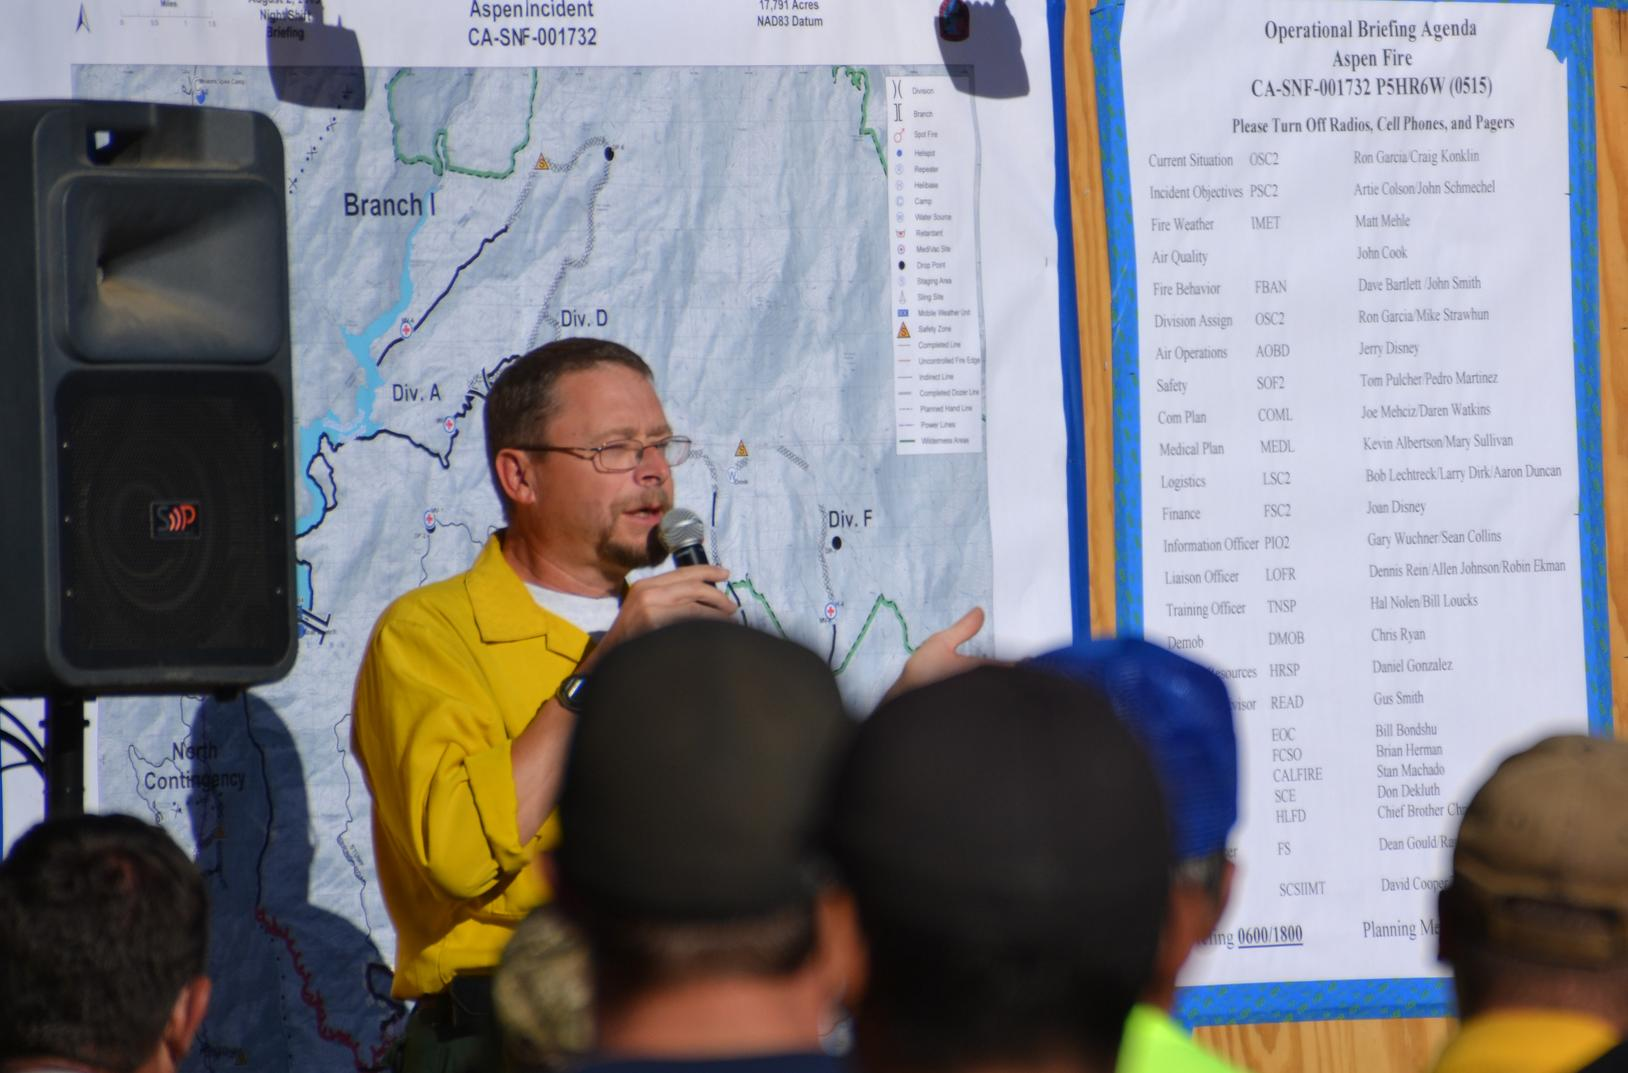 Fire Behavior Analyst Dave Bartlett at evening briefing on Aspen Fire - photo by Gina Clugston